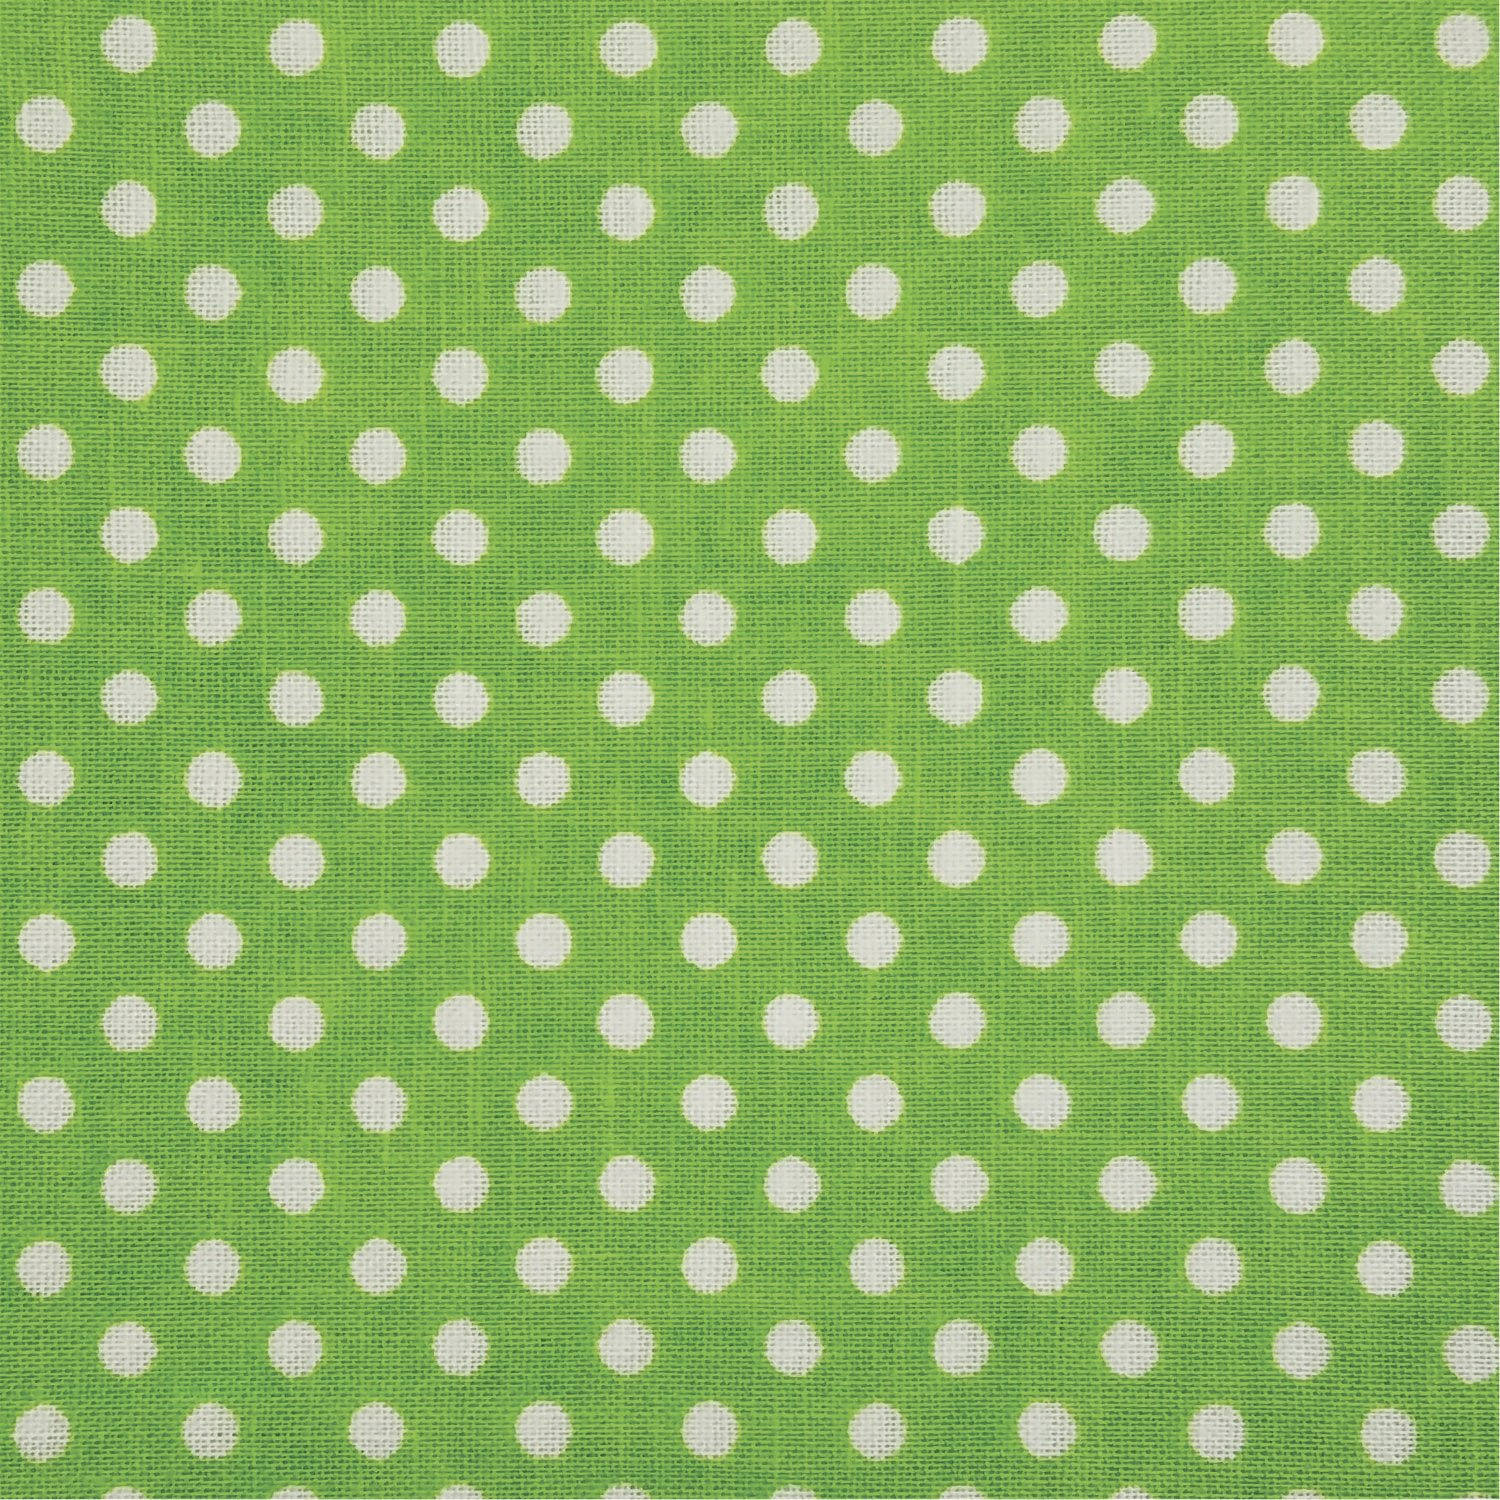 Fabric Palette Fat Quarter <br>Green - Design may vary <br>MD-G-PC373